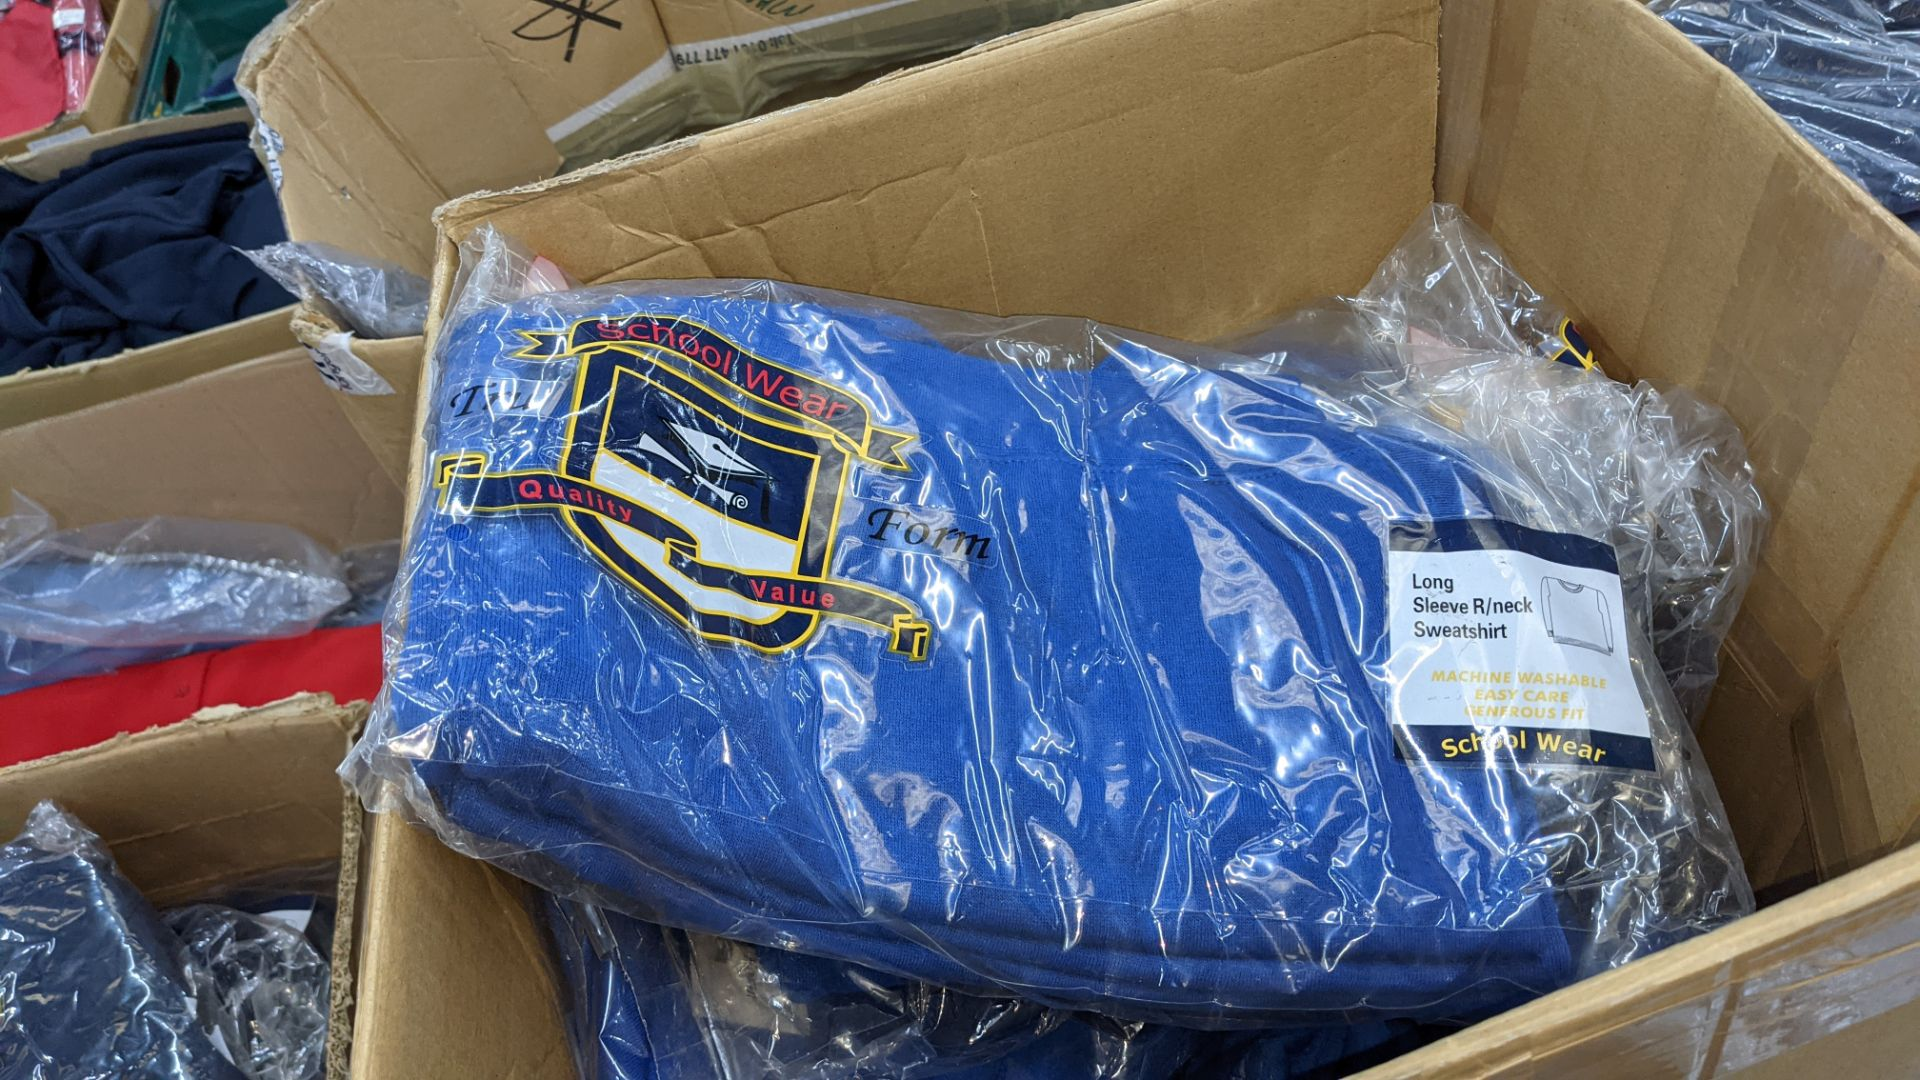 Approx 63 off blue children's sweatshirts - the contents of 1 tall box - Image 4 of 5